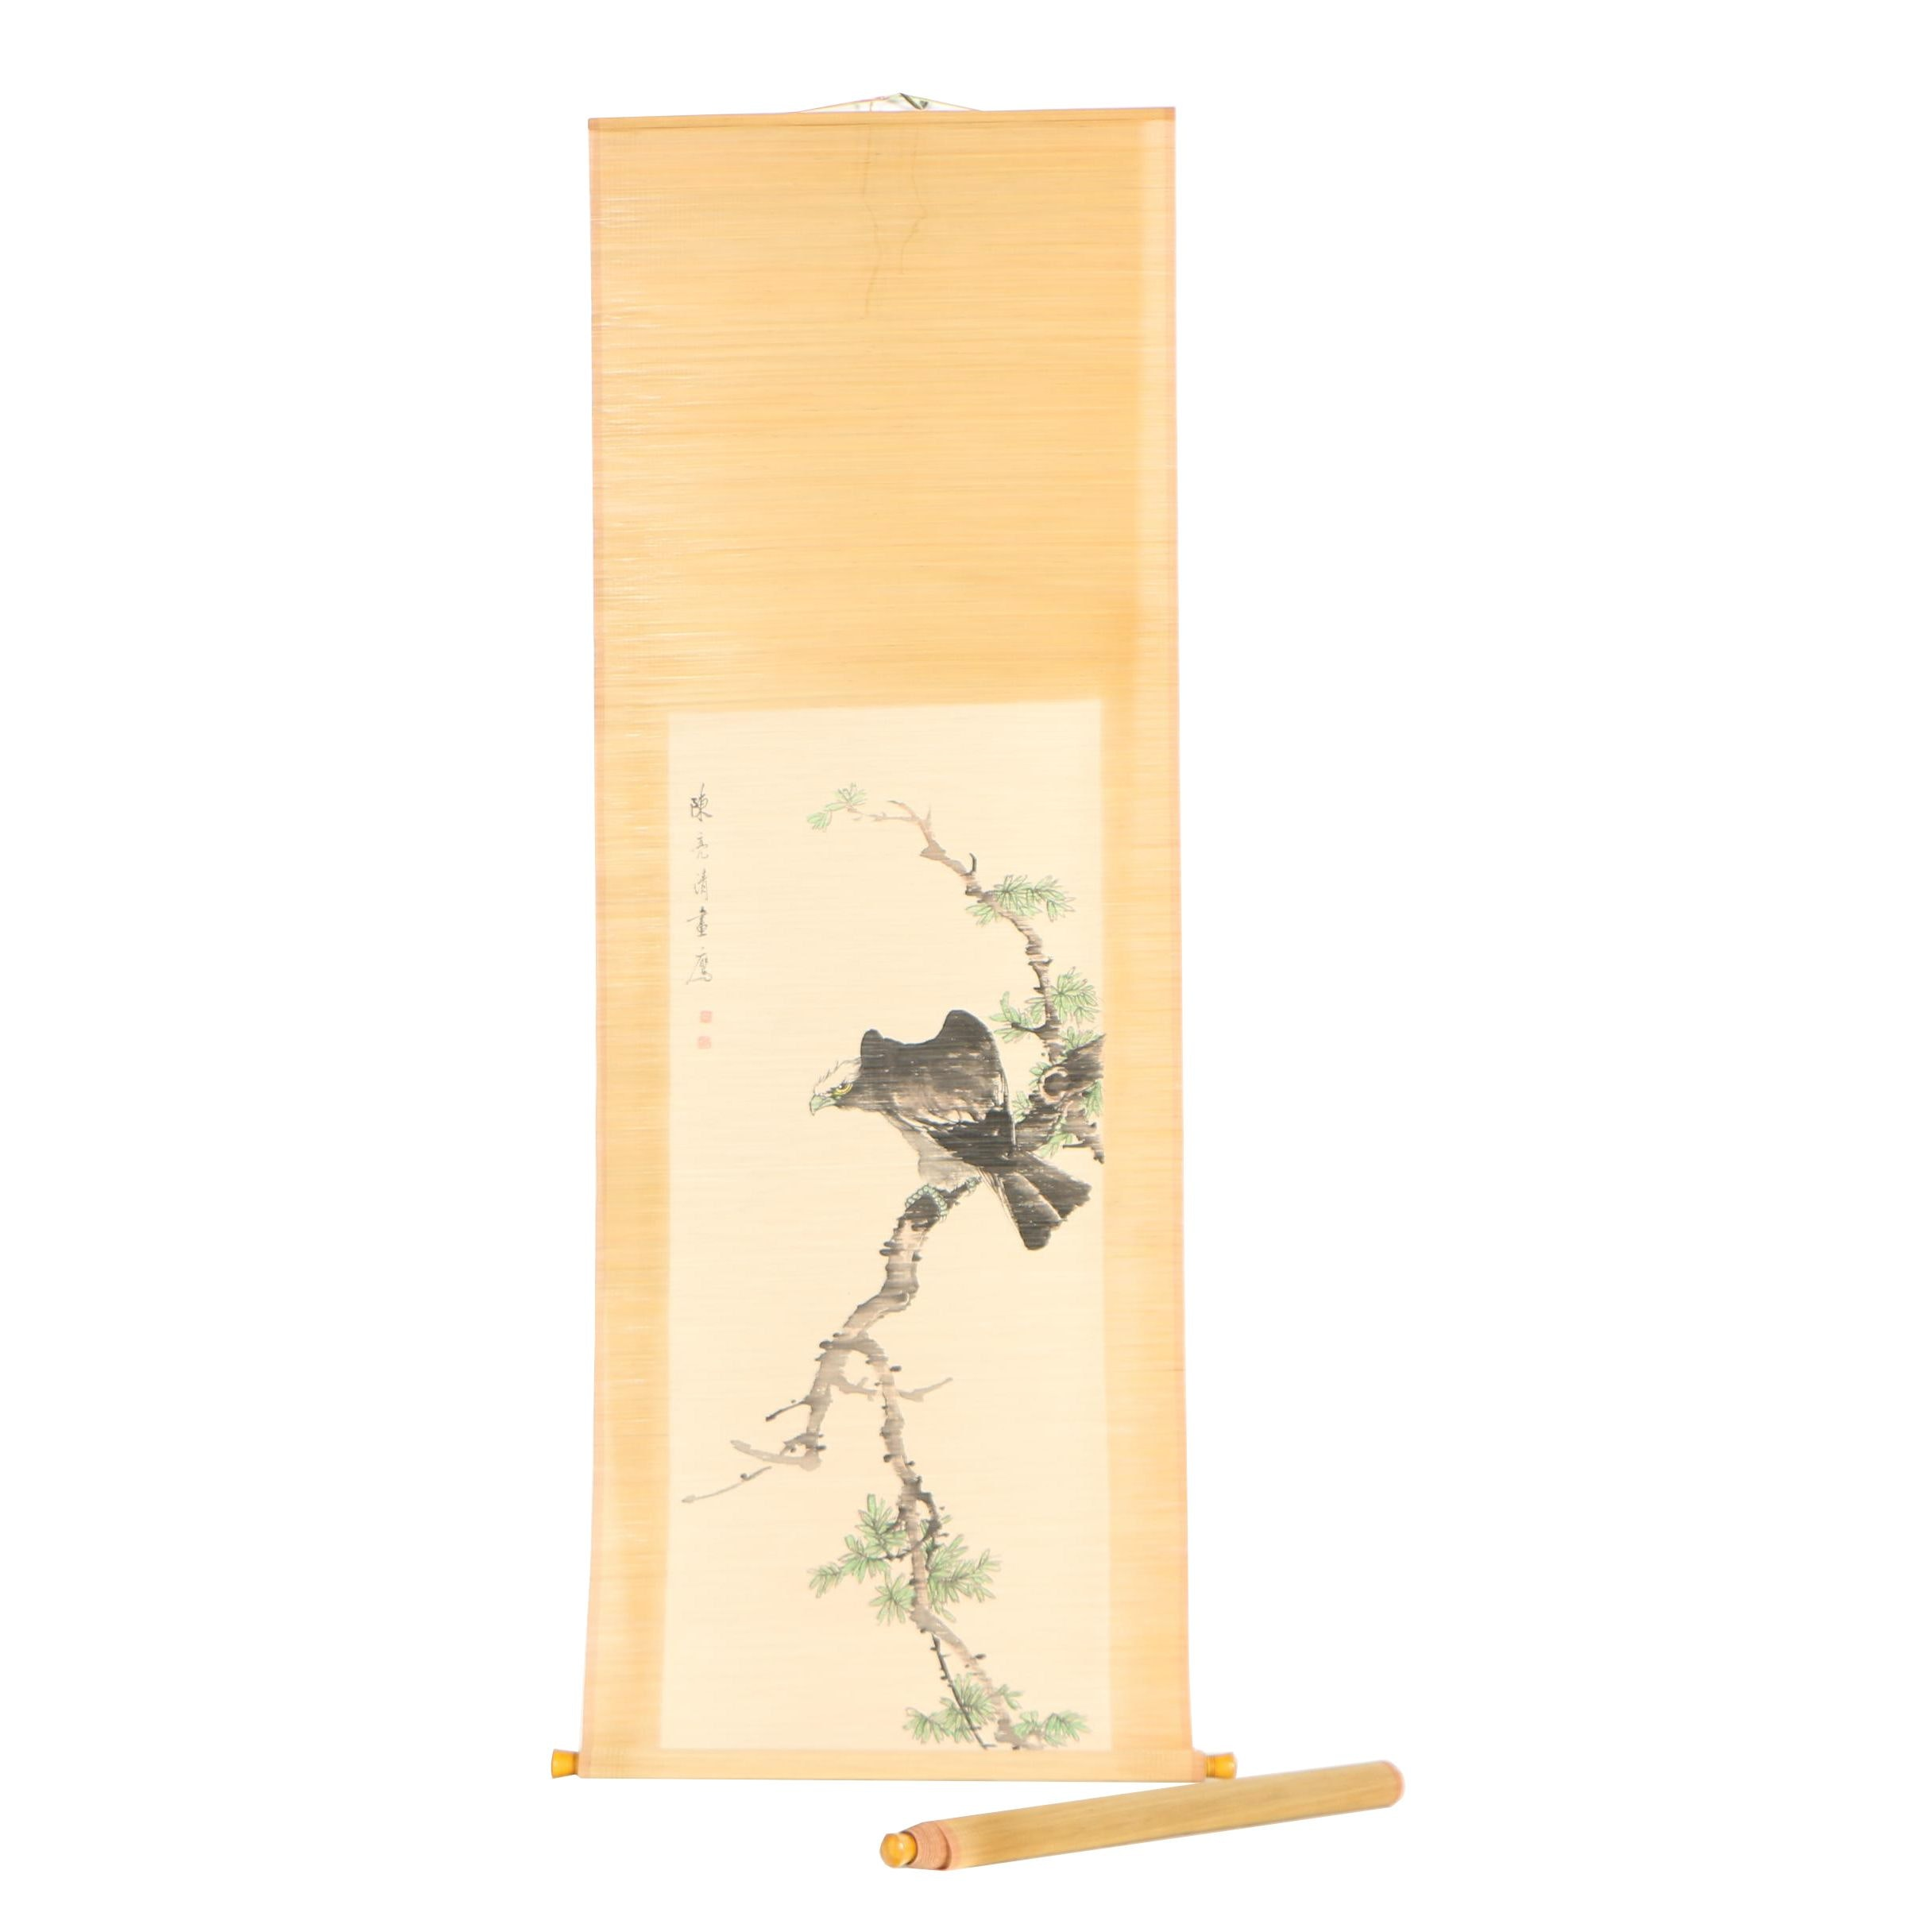 Chinese Ink and Gouache Wall Hanging Scrolls